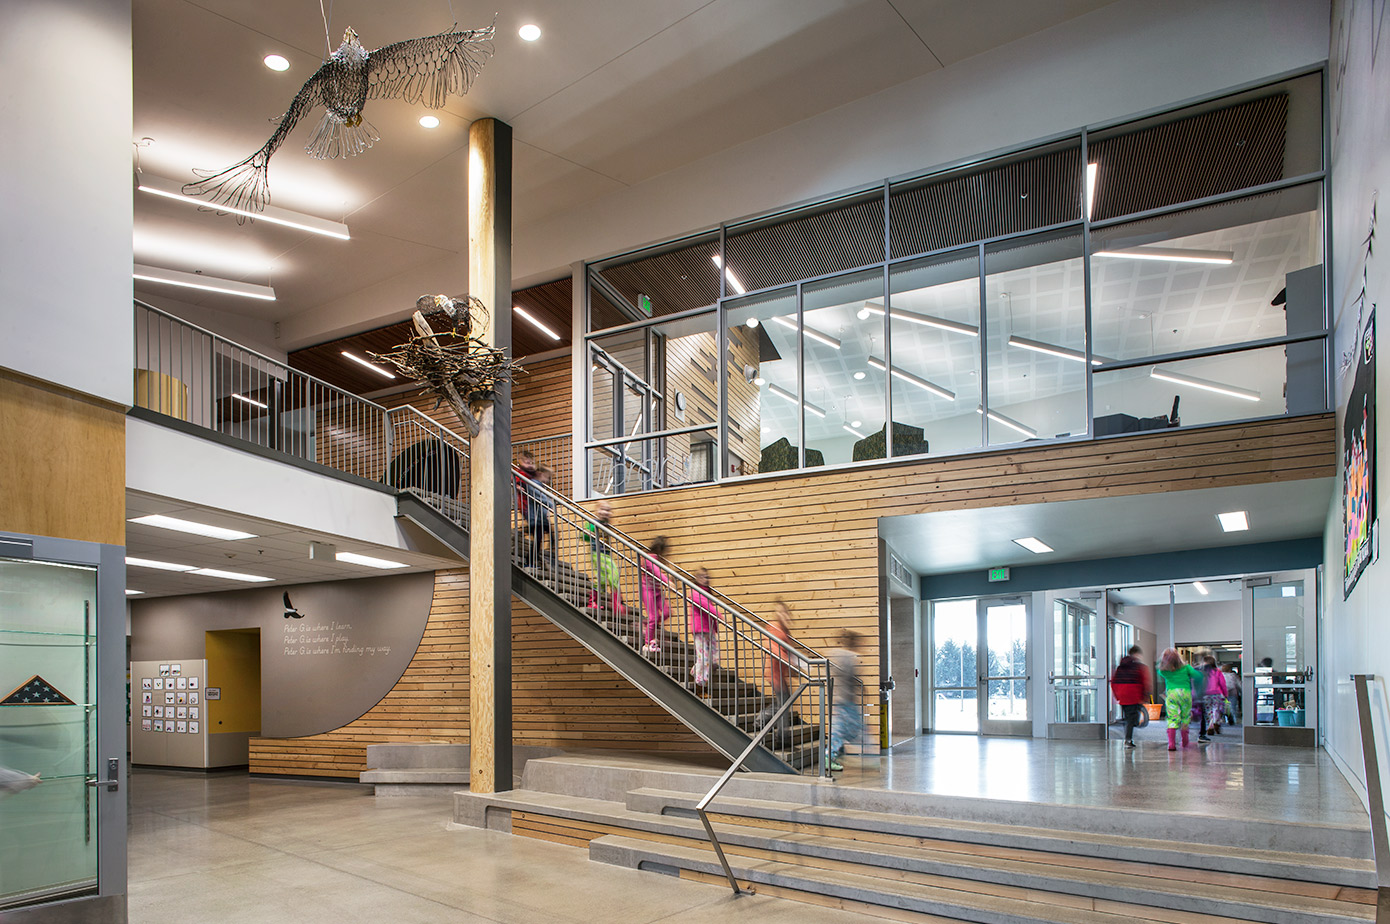 Peter G Schmidt Elementary School Replacement | Forma